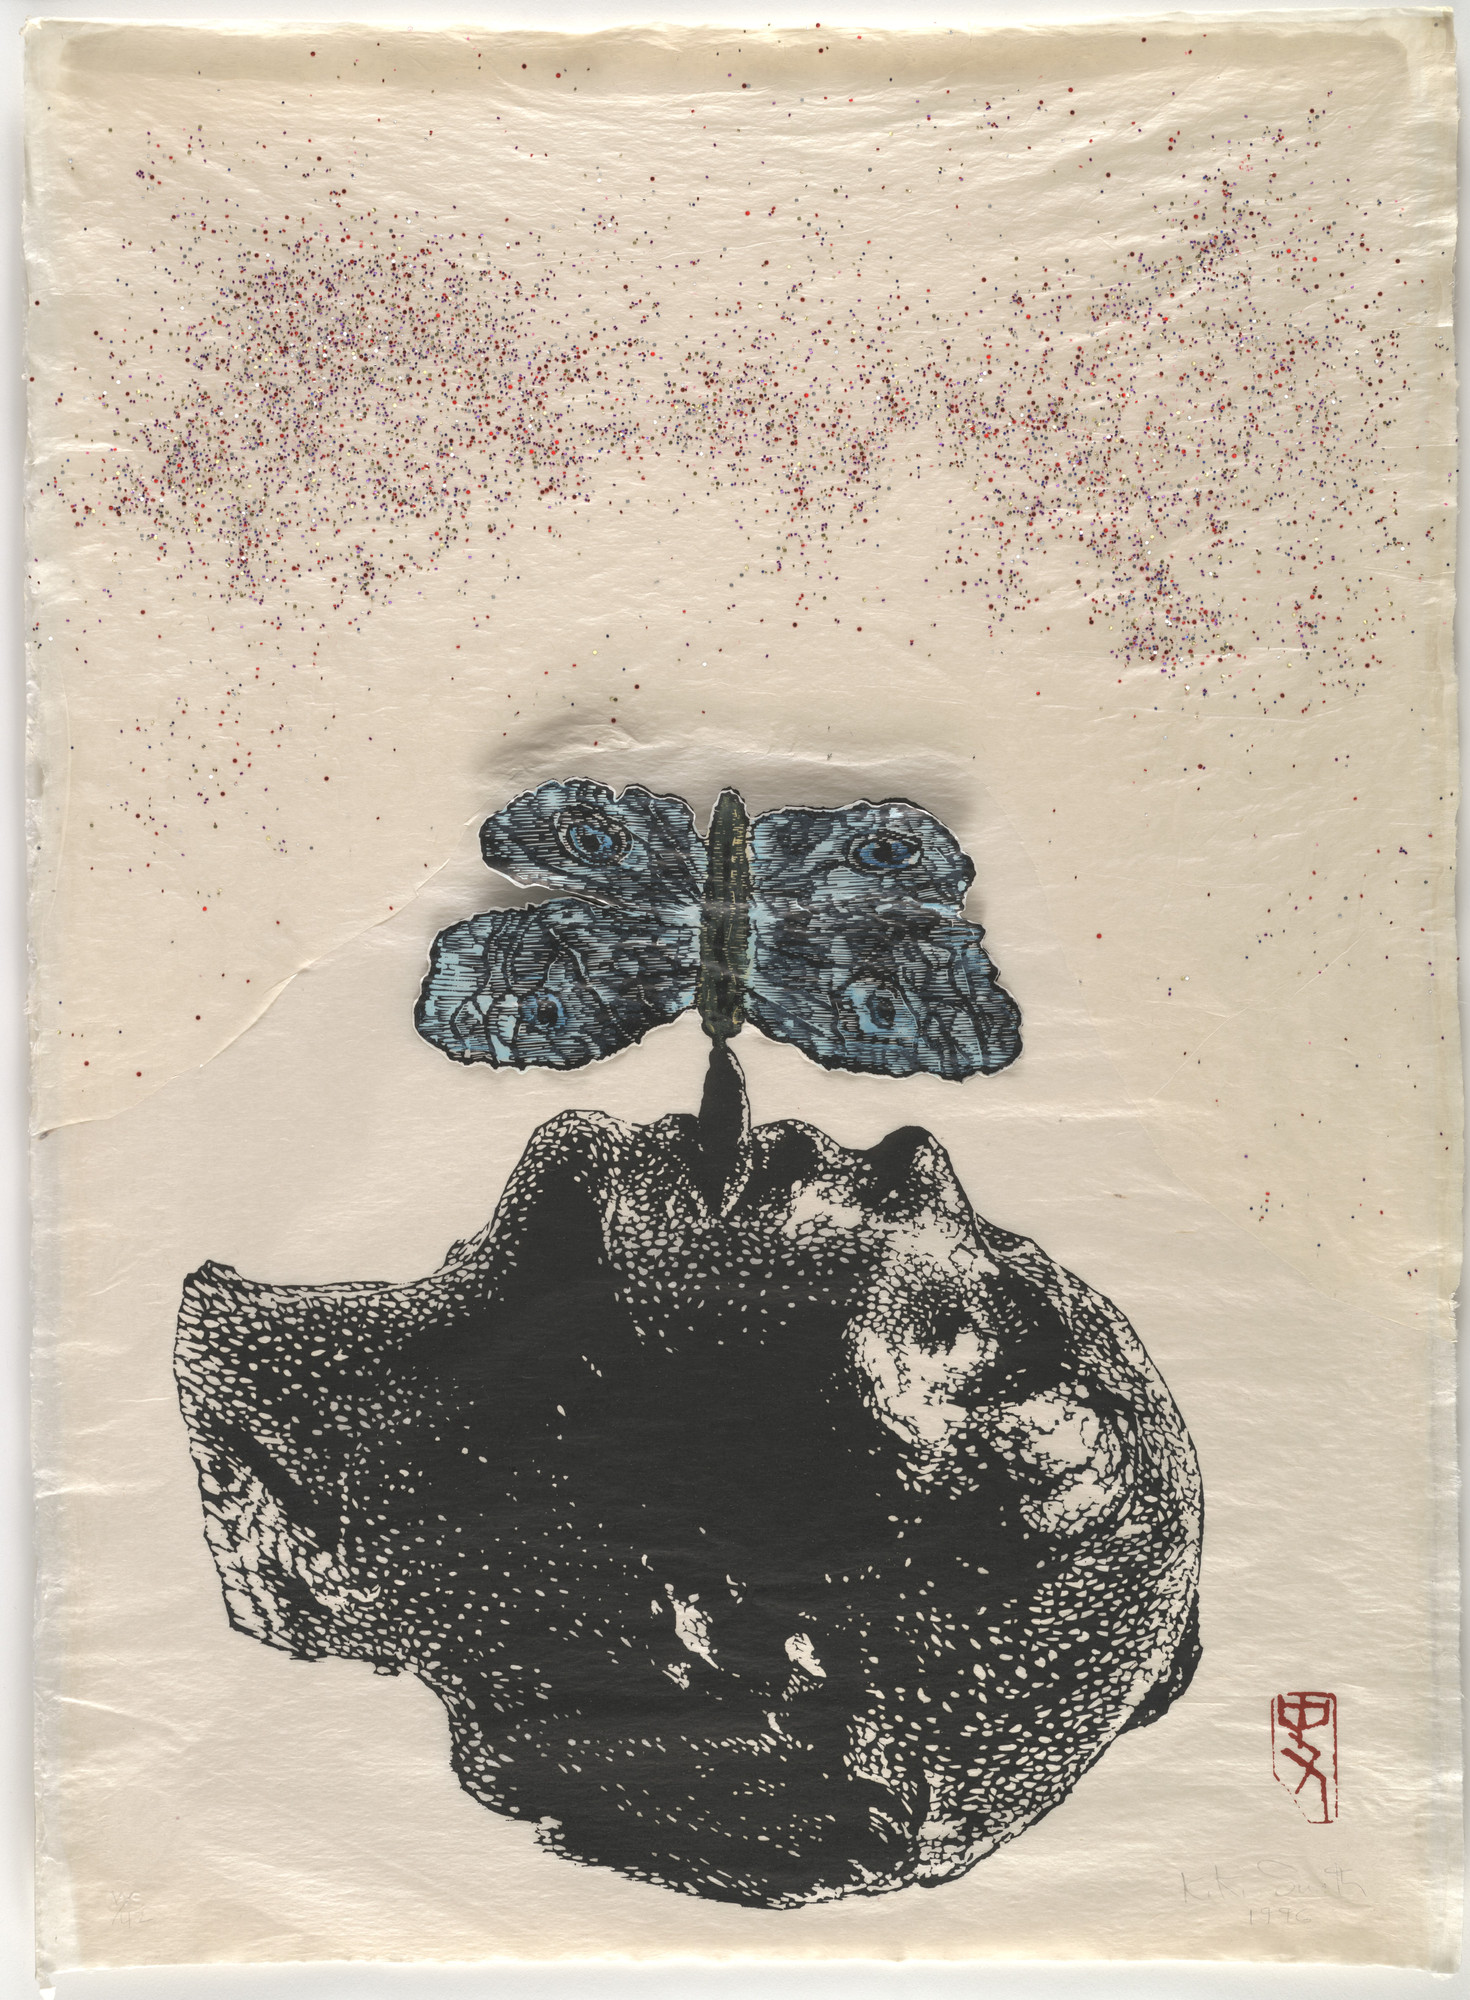 Kiki Smith. Moth. 1996